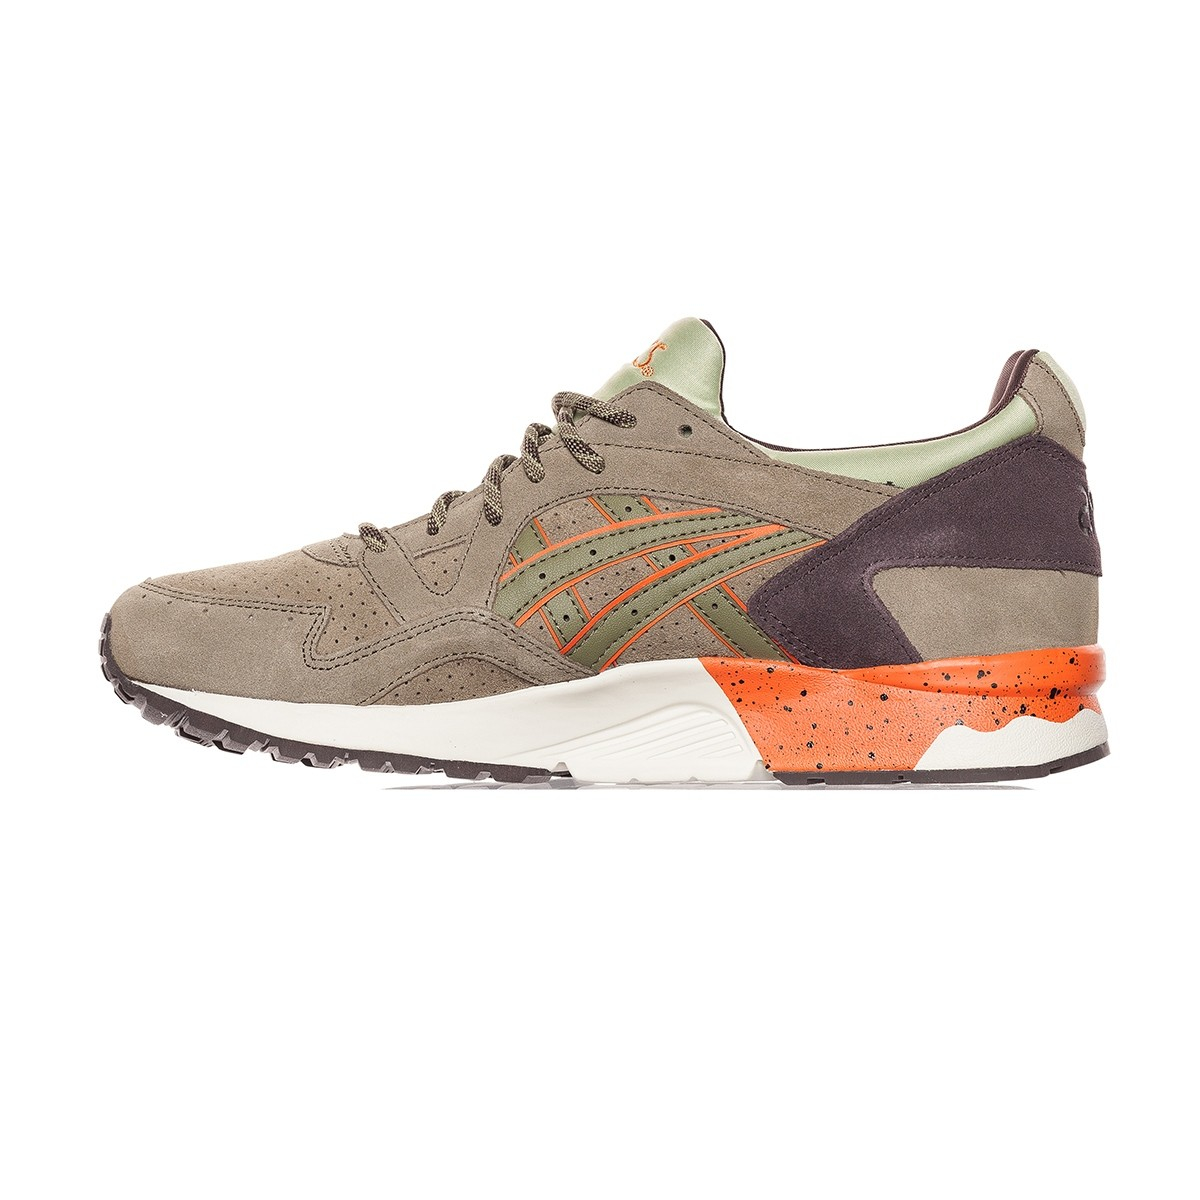 separation shoes a44f4 19900 Asics Gel Lyte V Sneakers in Gray for Men - Lyst